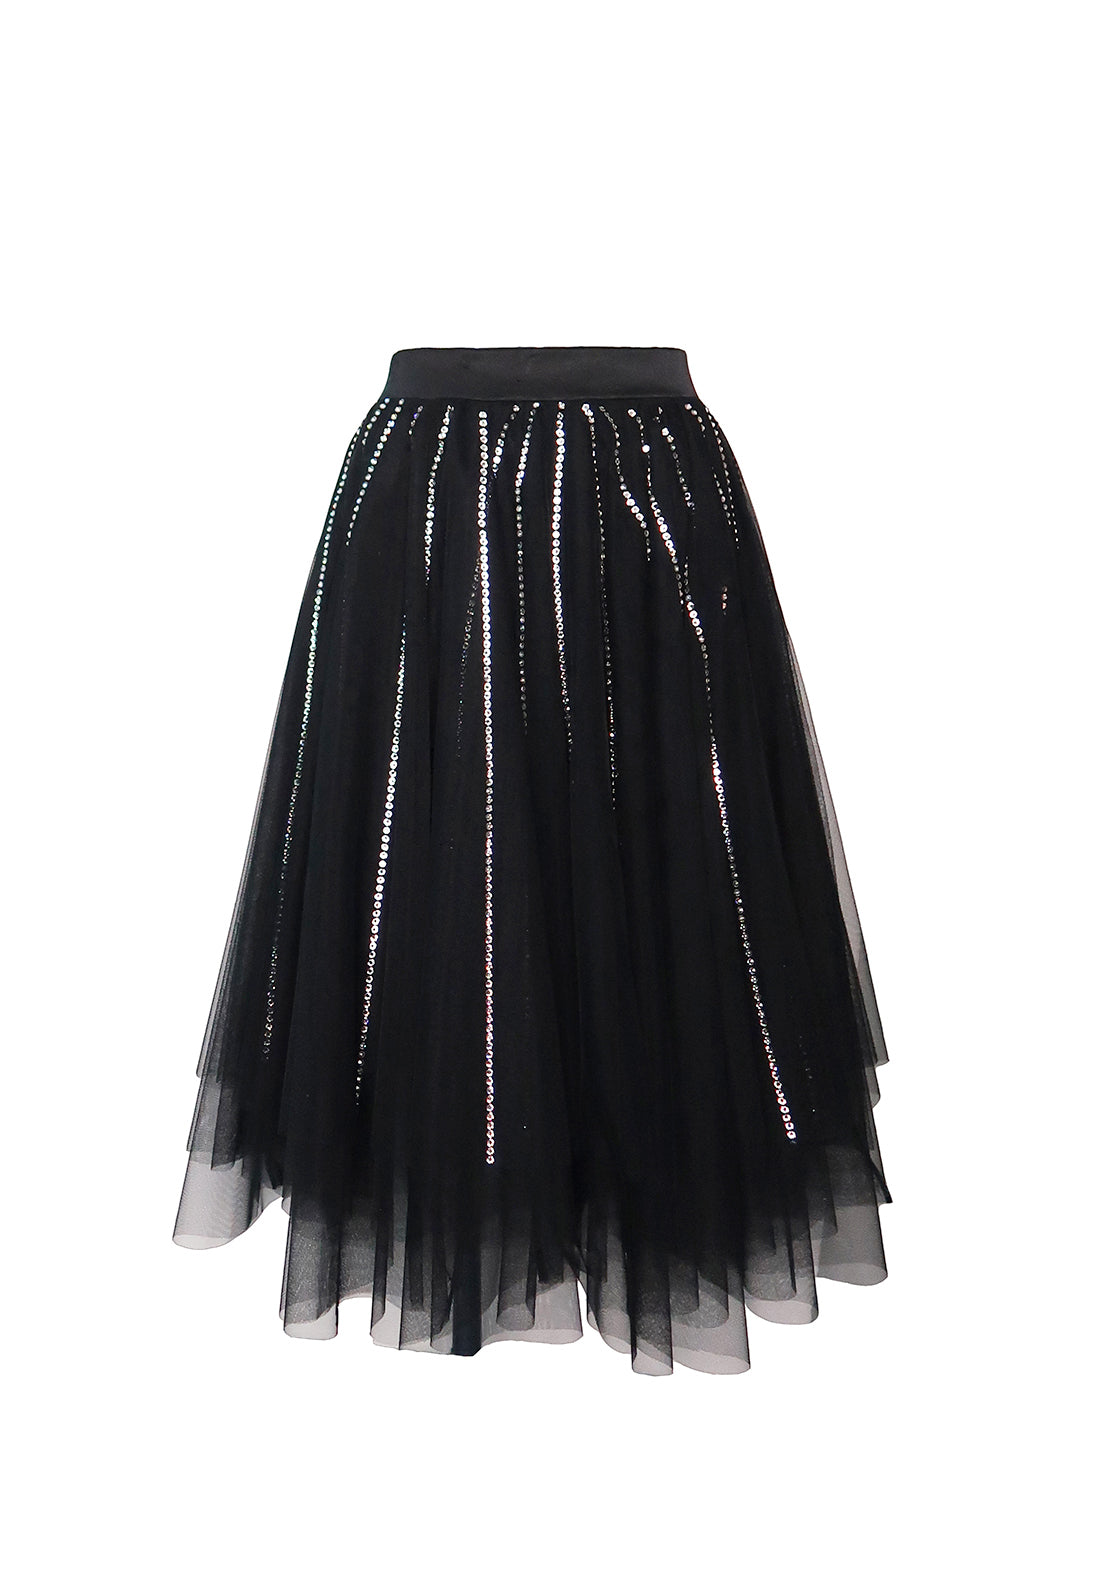 Nuit Interdit Midi Skirt in Fine Tulle with Swarovski Crystals in Black